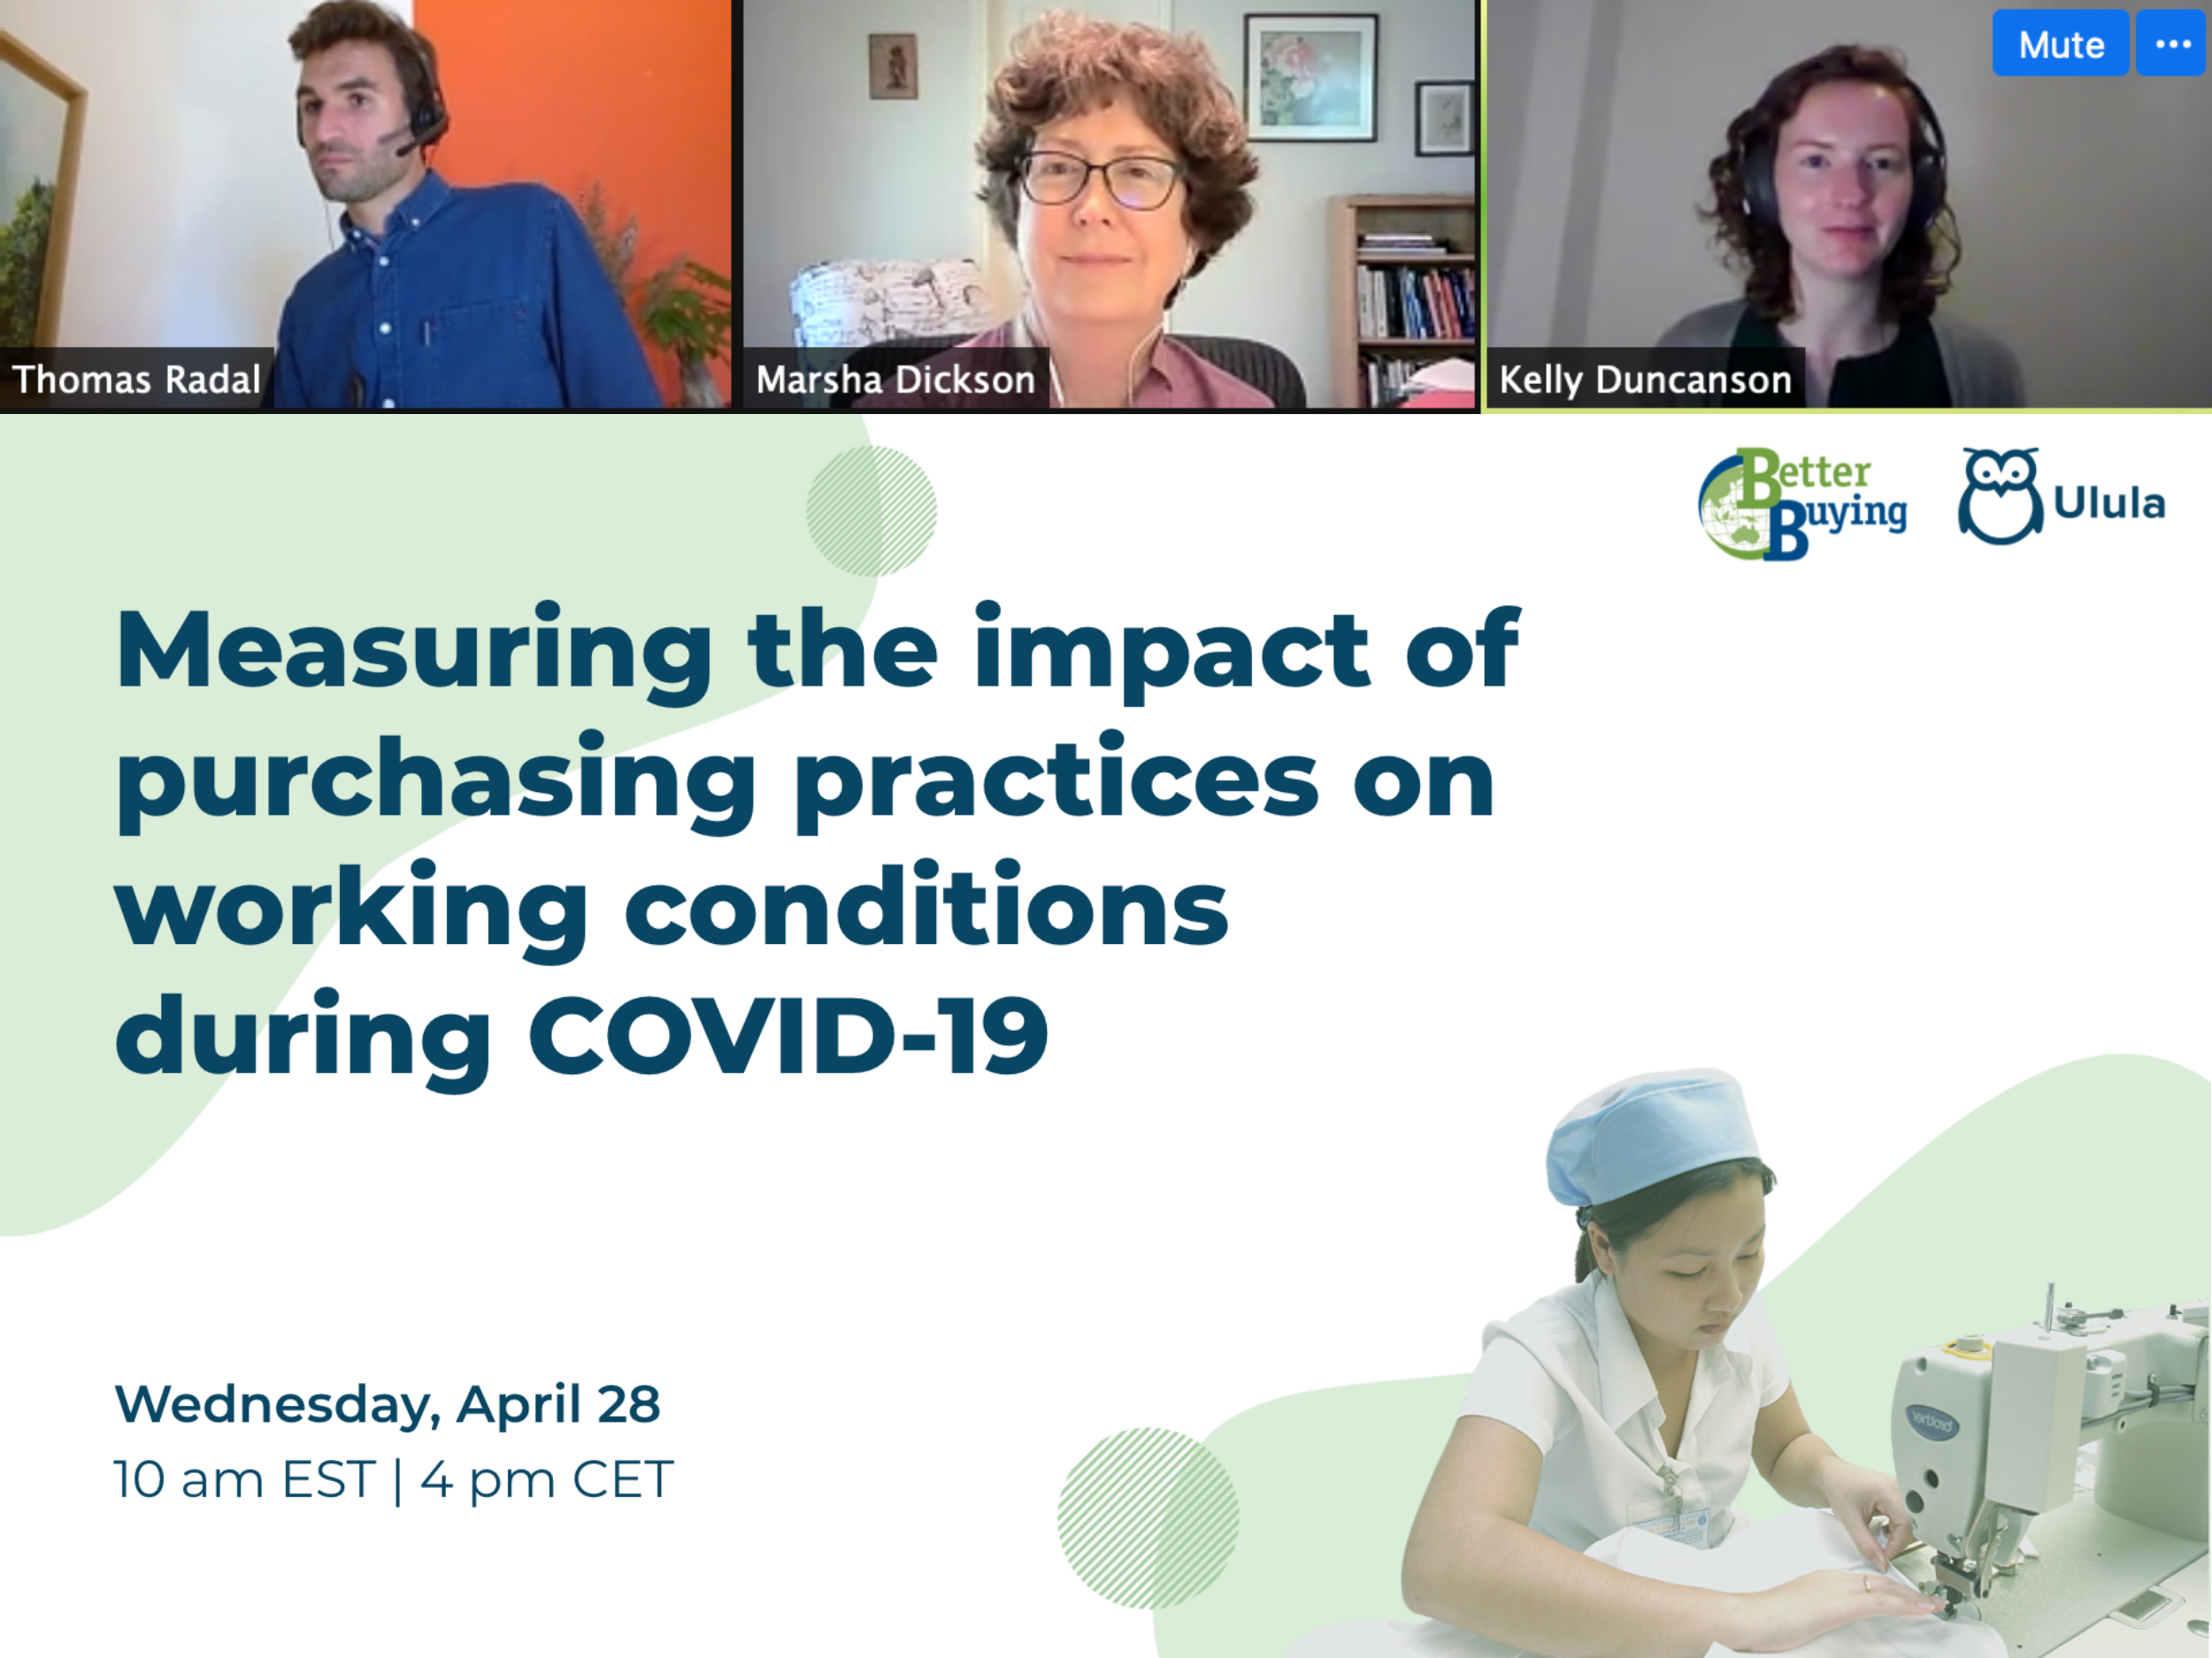 Webinar: Measuring the impact of purchasing practices on working conditions during COVID-19